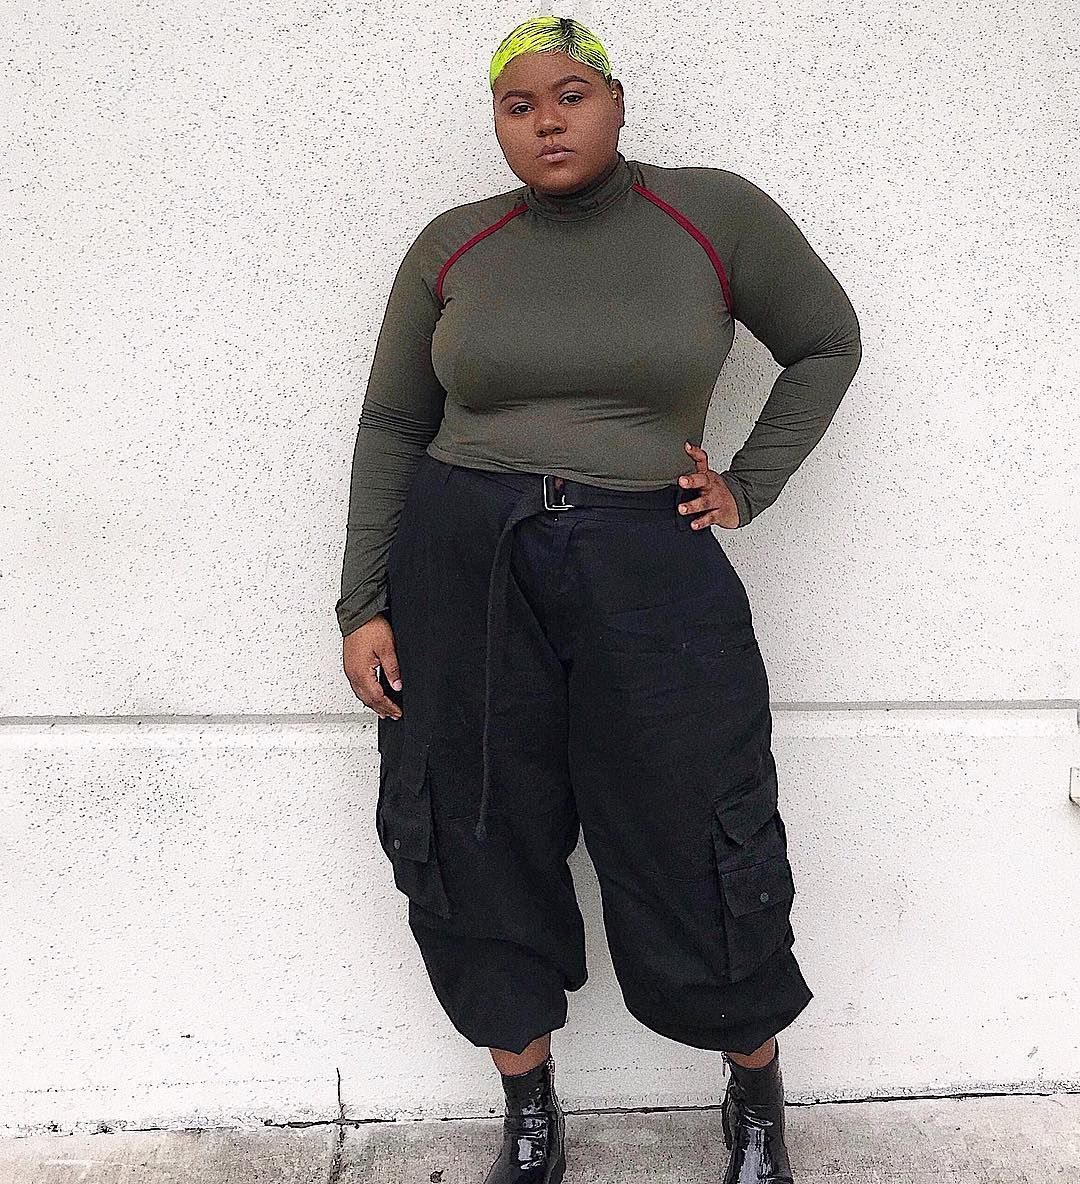 Ig User Hantisedeloubli Models A Fashion Nova Curve Top With Thrifted Mens Cargo Pants